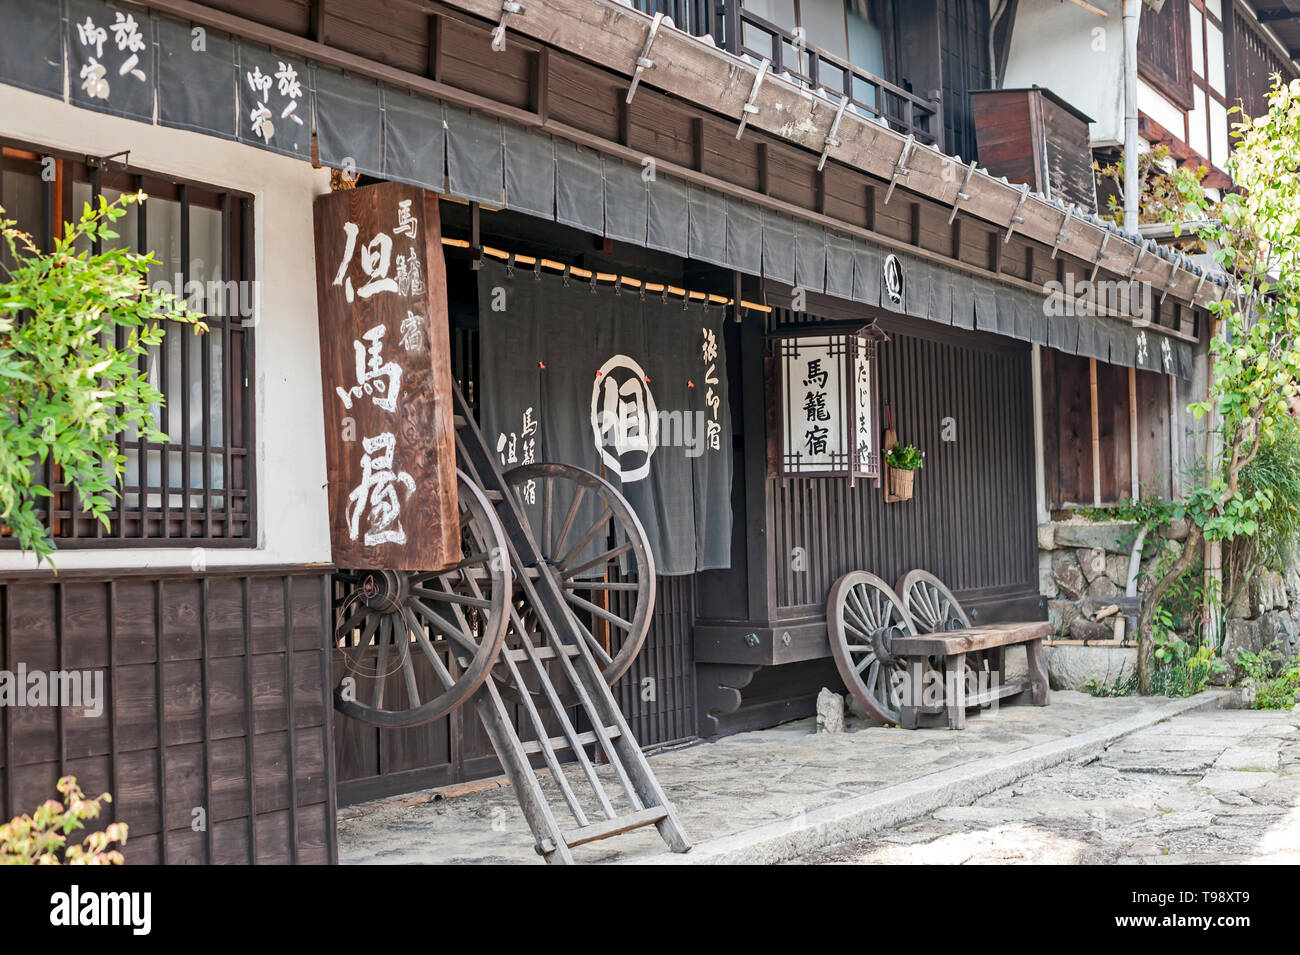 A hataga or hatagoya, replica Edo period lodging in Magome, Japan offering board and food for travellers. - Stock Image